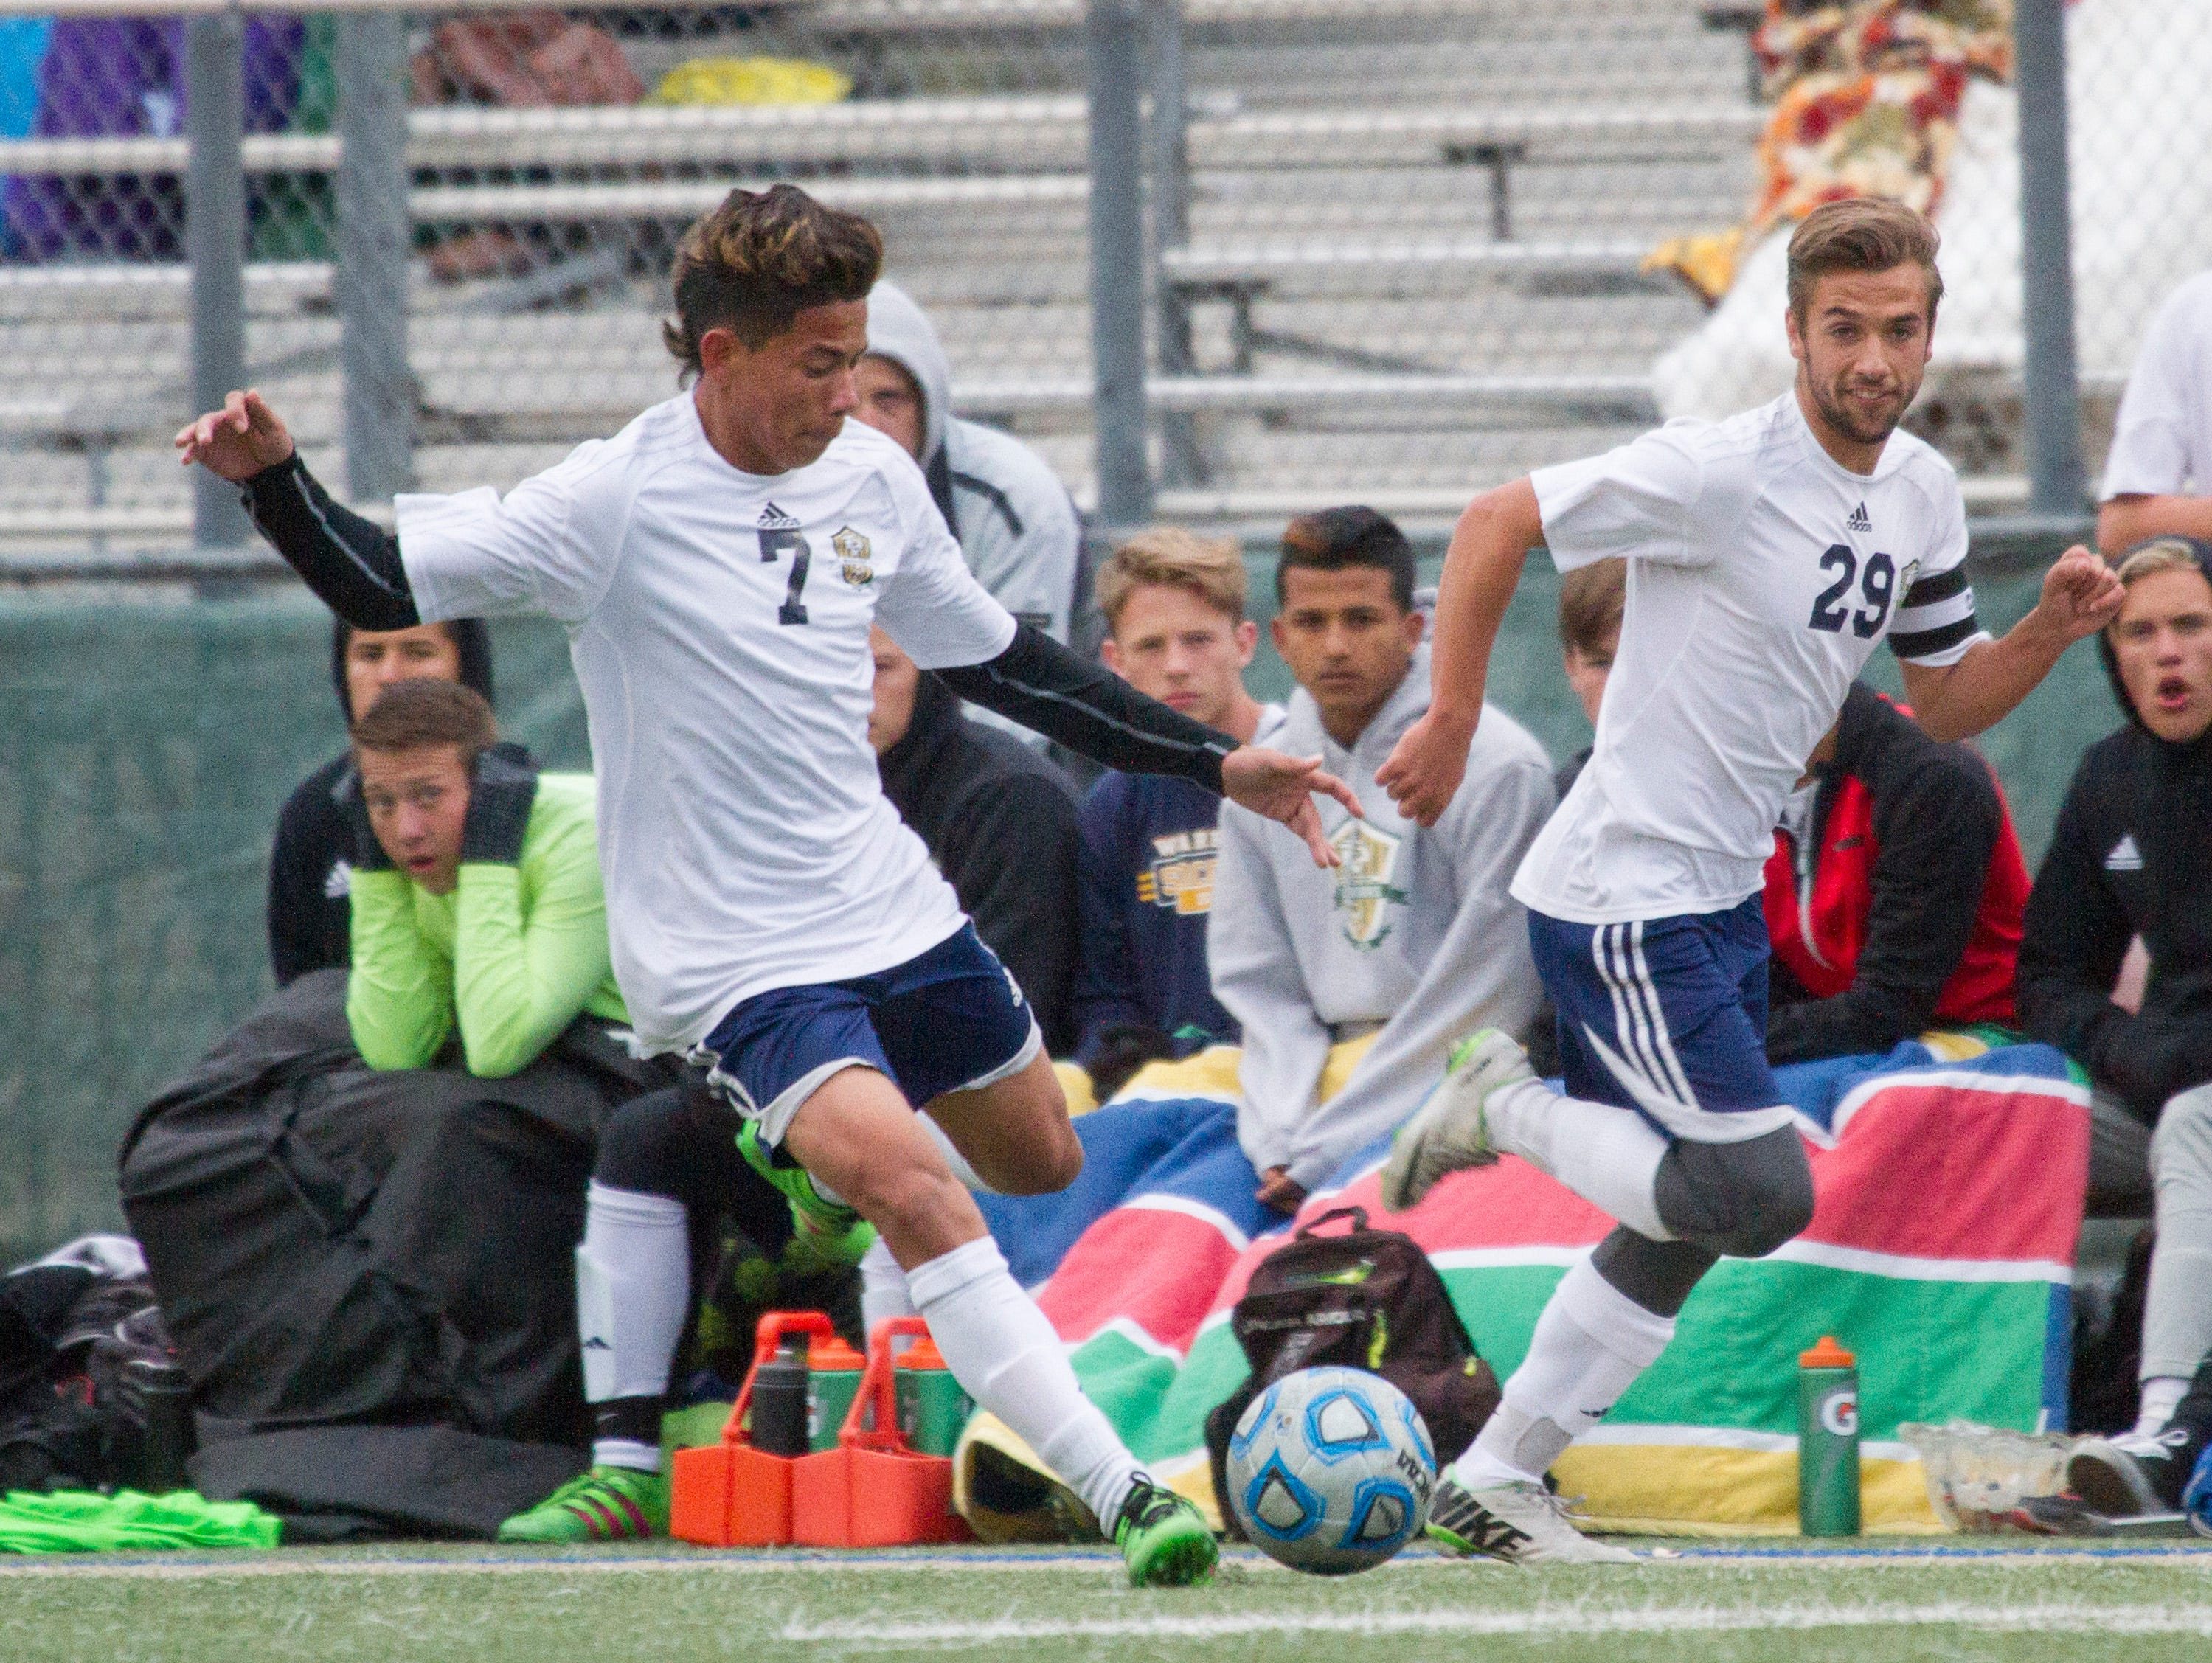 Snow Canyon boys soccer hosts Pine View Thursday, March 29, 2016.